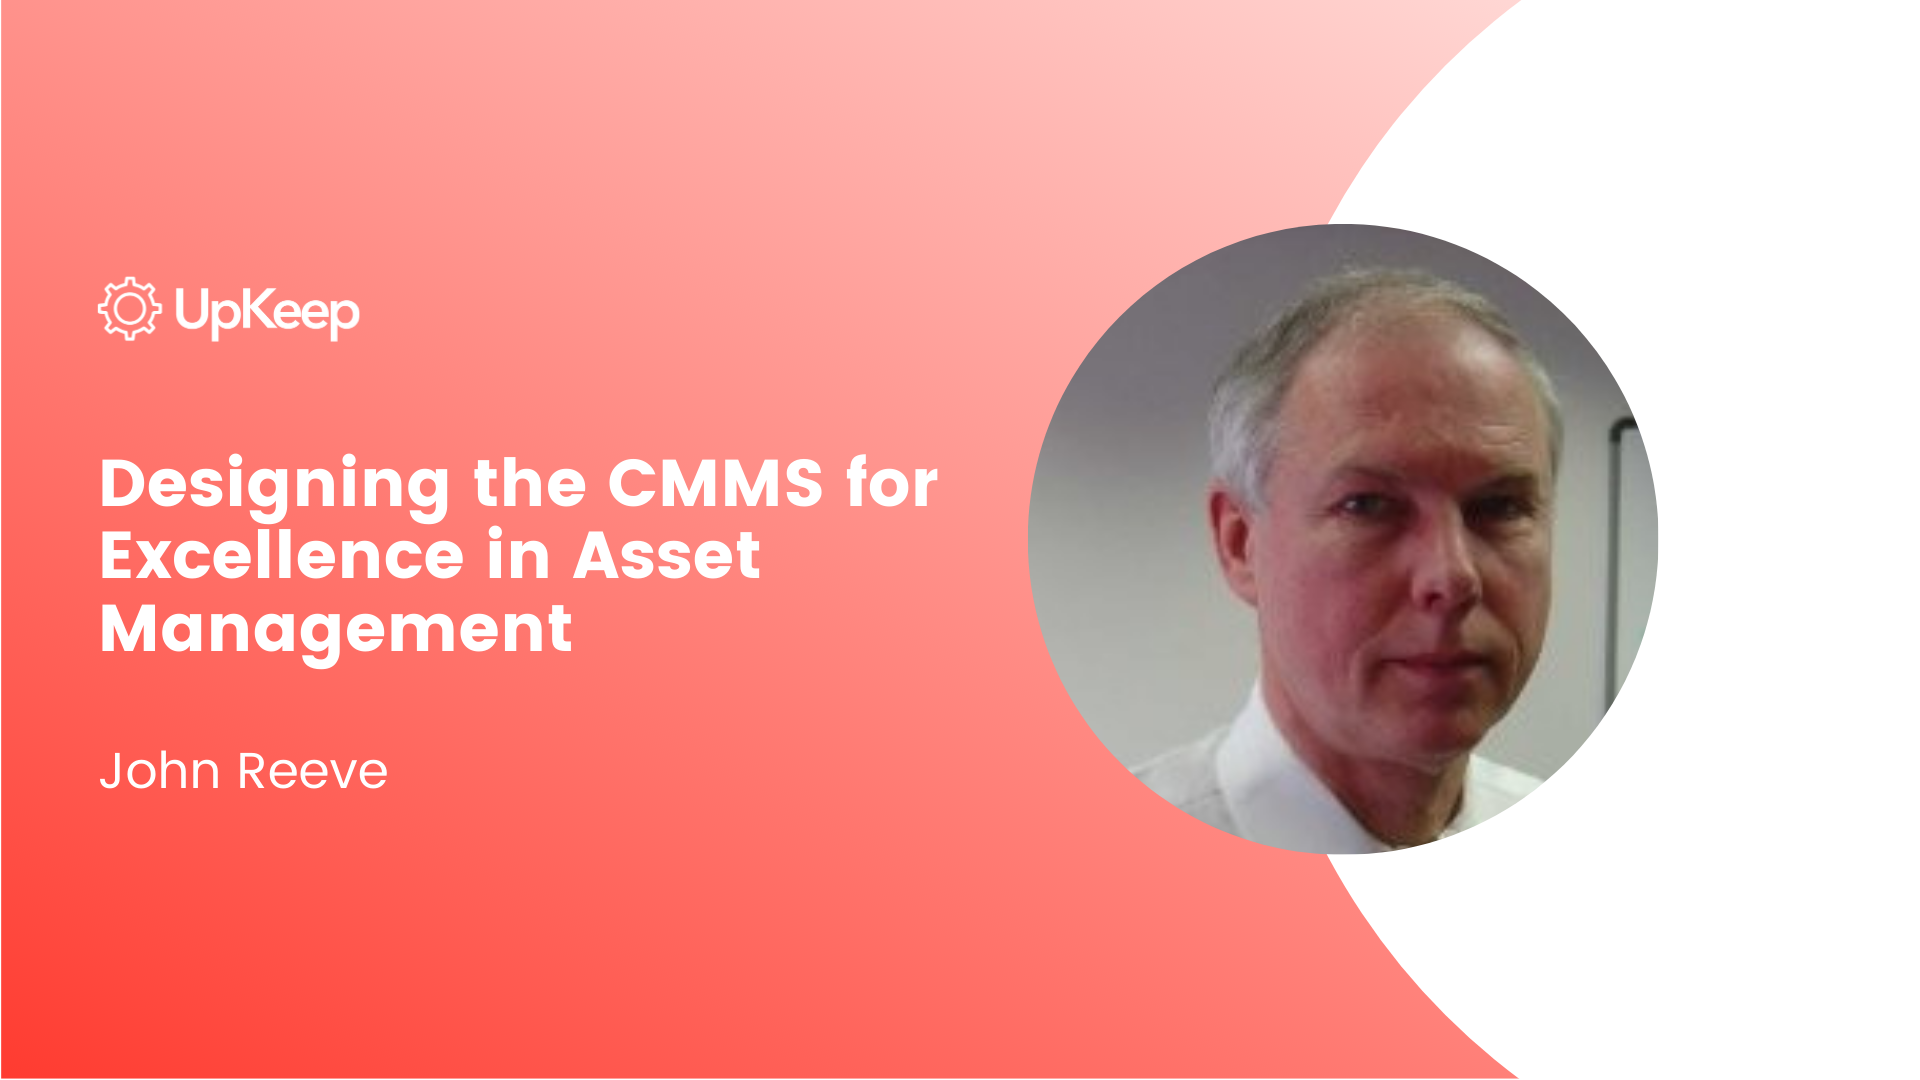 Designing the CMMS for Excellence in Asset Management